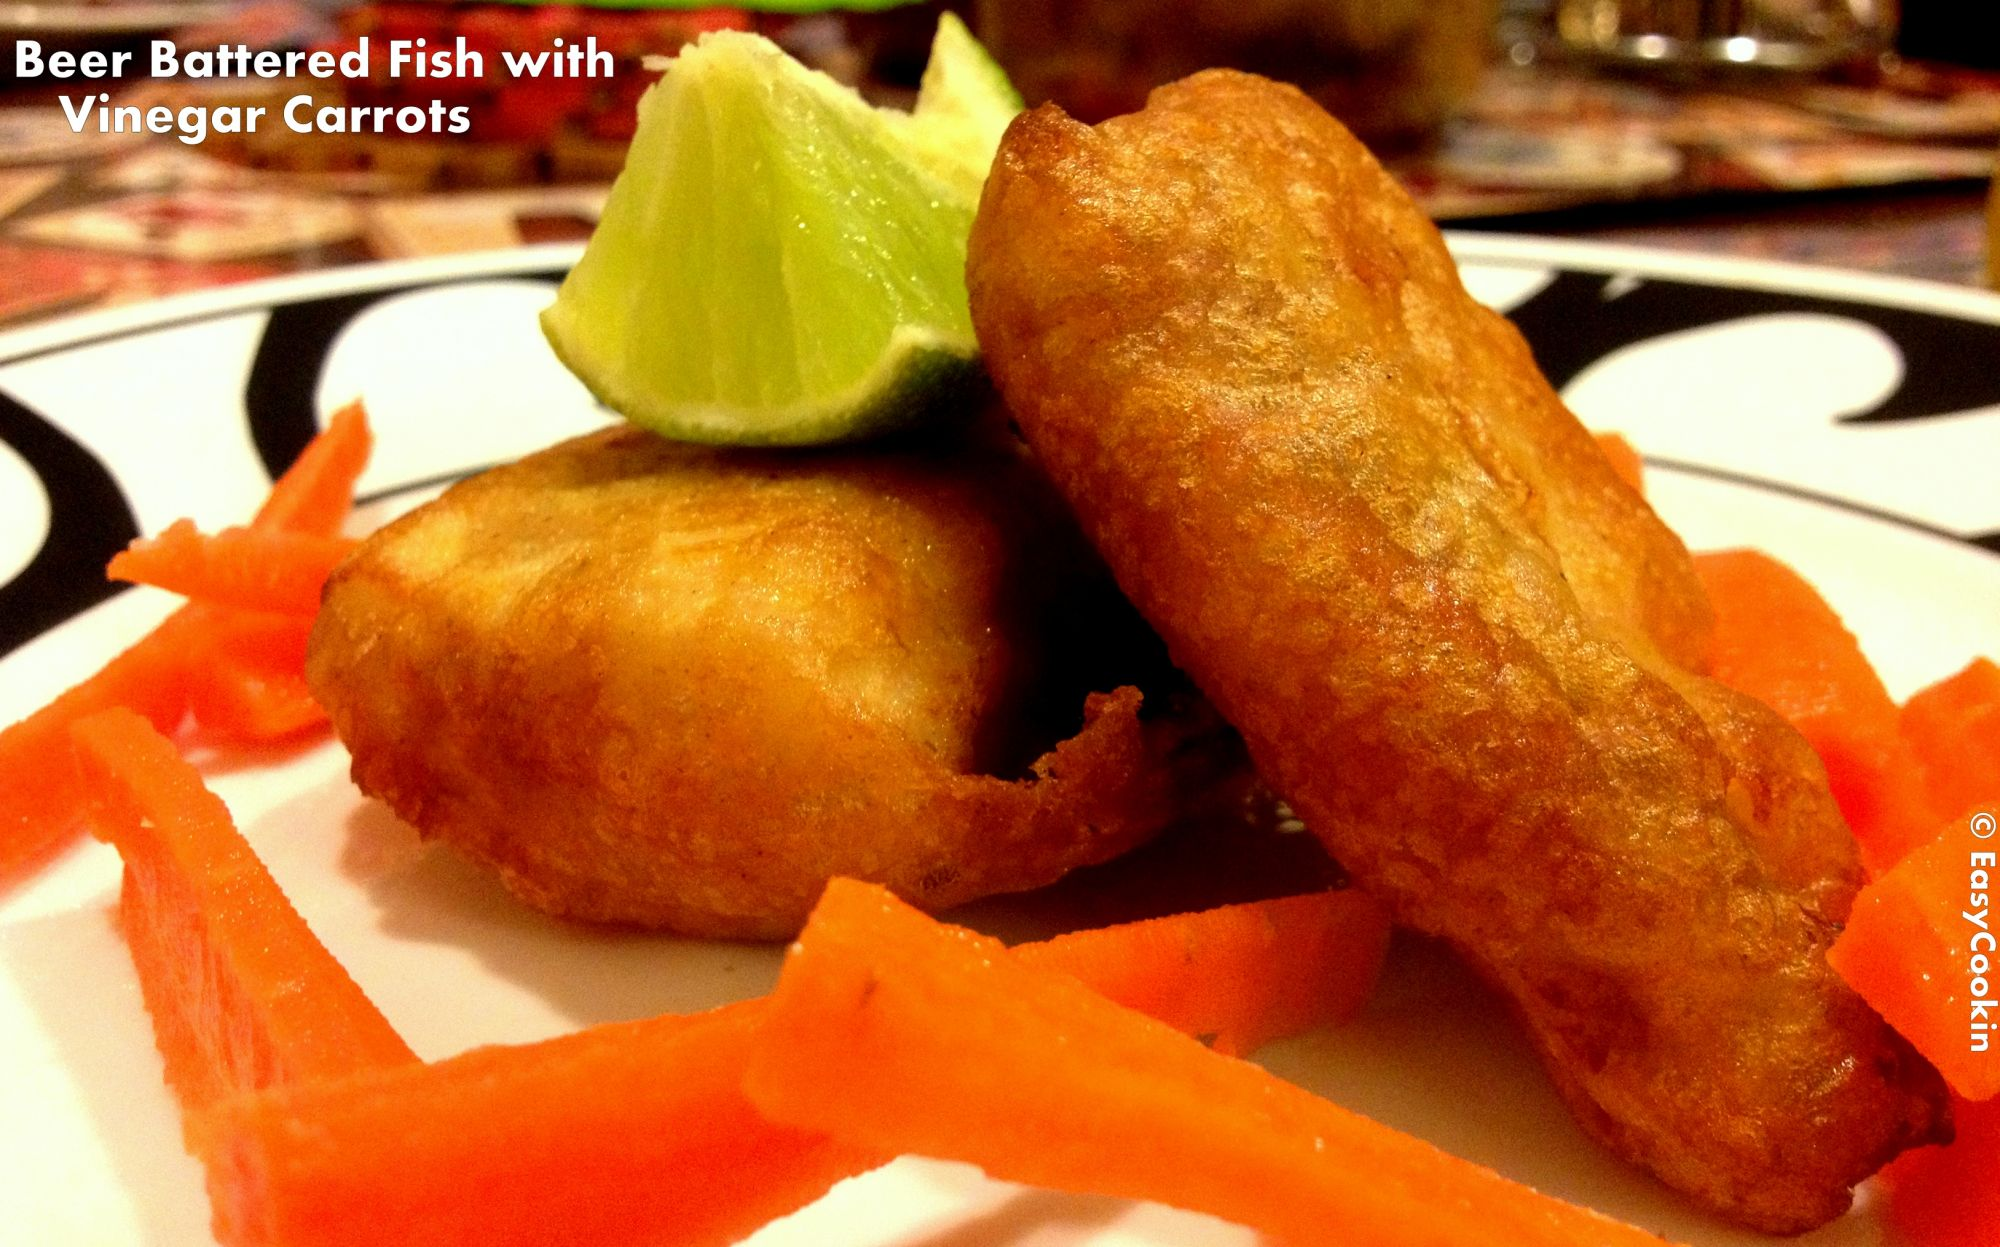 Beer battered fish with vinegar carrots recipe 4 1 5 for Beer batter fish